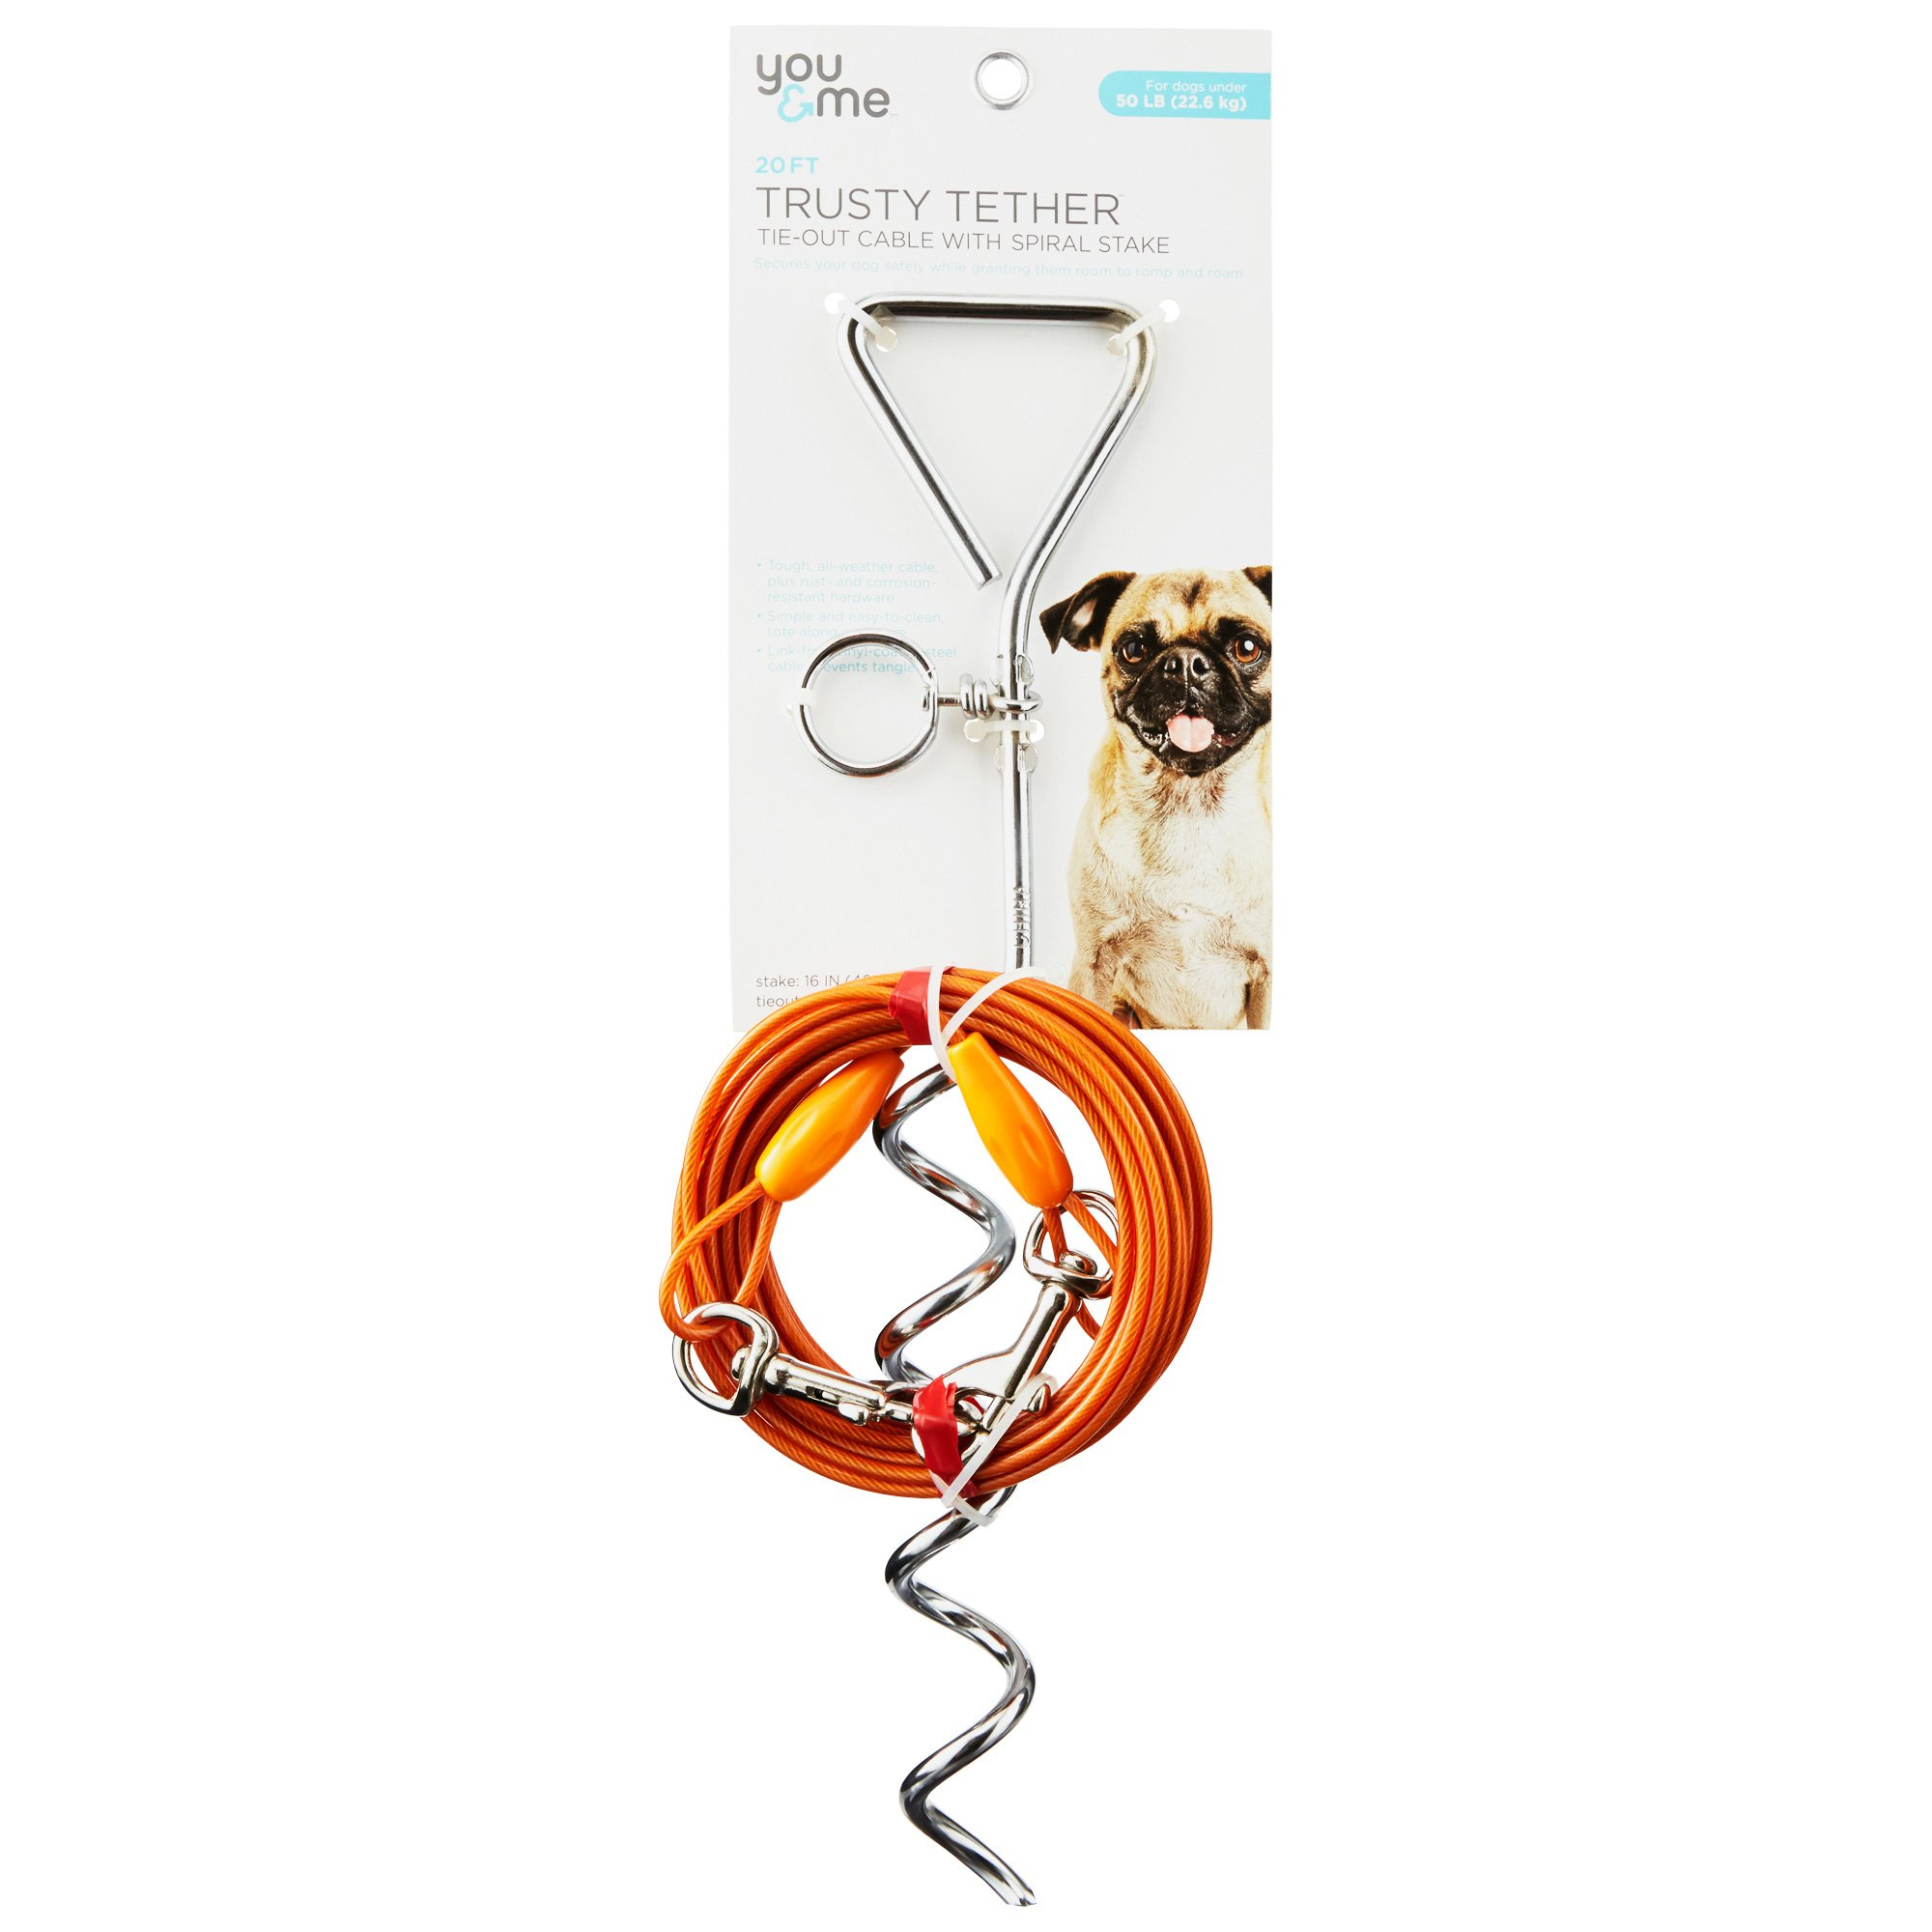 You & Me Trusty Tether Orange Tie-Out Cable with Spiral Stake